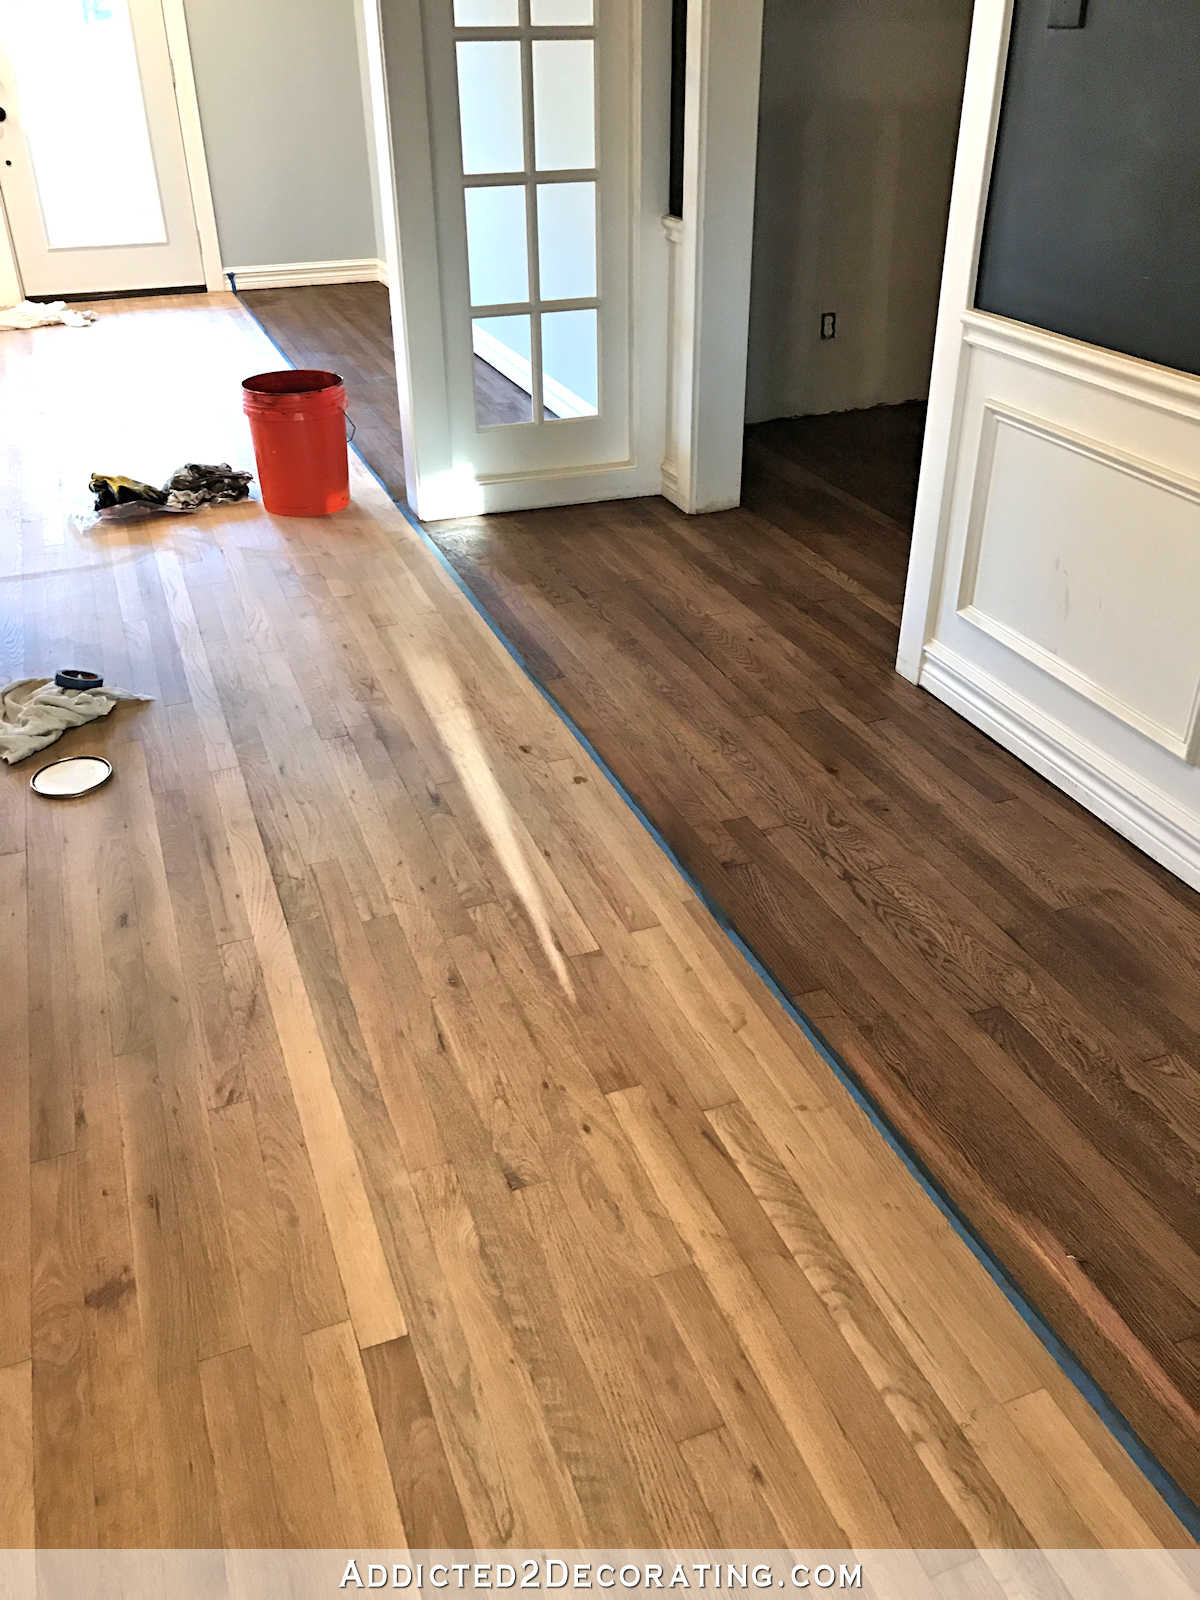 trends in hardwood flooring 2015 of adventures in staining my red oak hardwood floors products process intended for staining red oak hardwood floors 6 stain on partial floor in entryway and music room